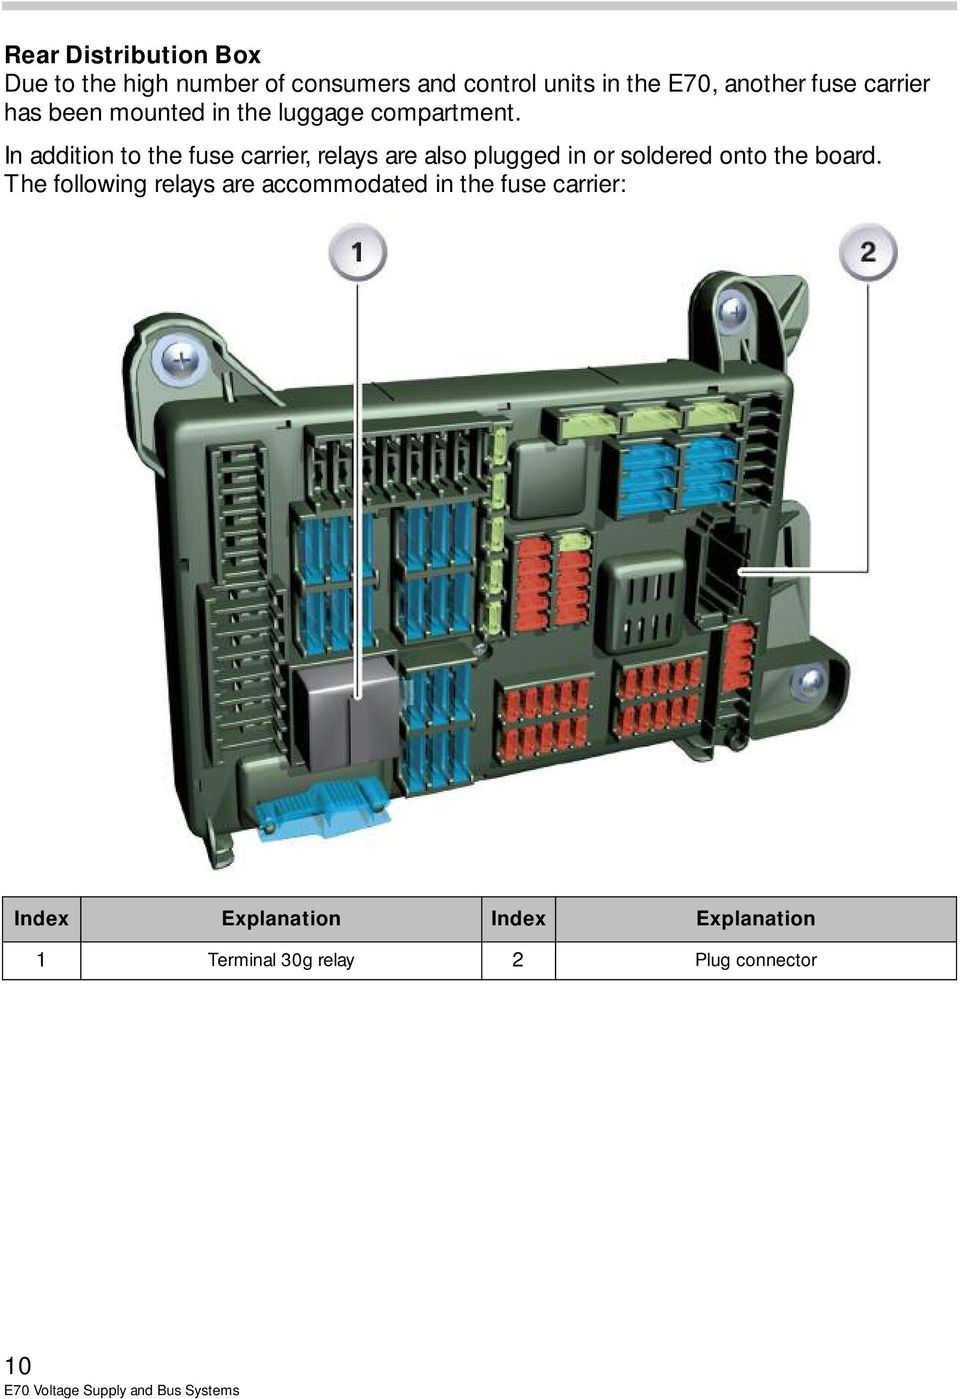 E70 Voltage Supply And Bus Systems Pdf Electronic Selector Driven By Relays In Addition To The Fuse Carrier Are Also Plugged Or Soldered Onto